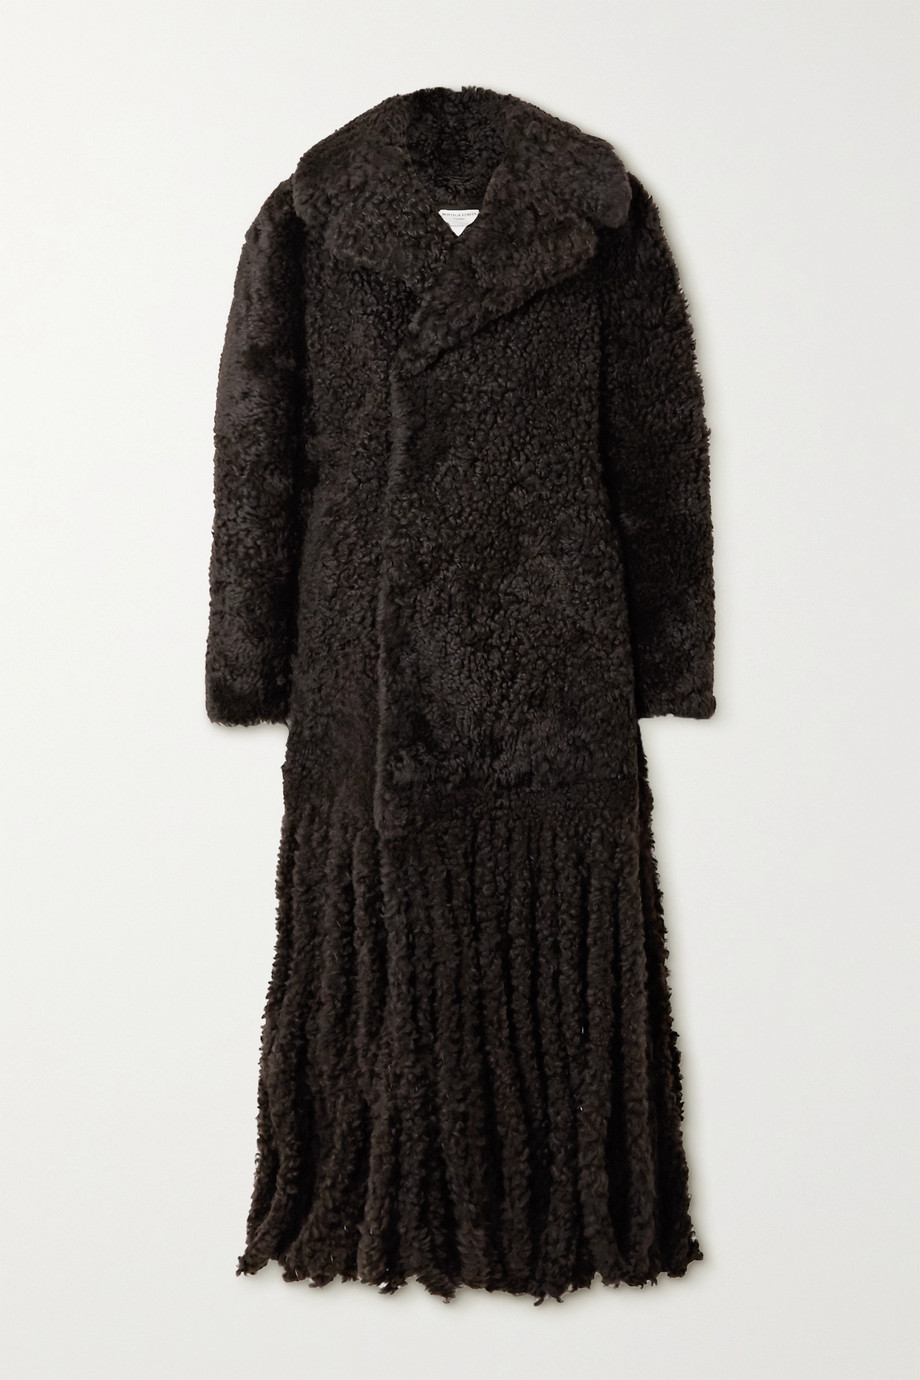 Bottega Veneta Fringed shearling coat